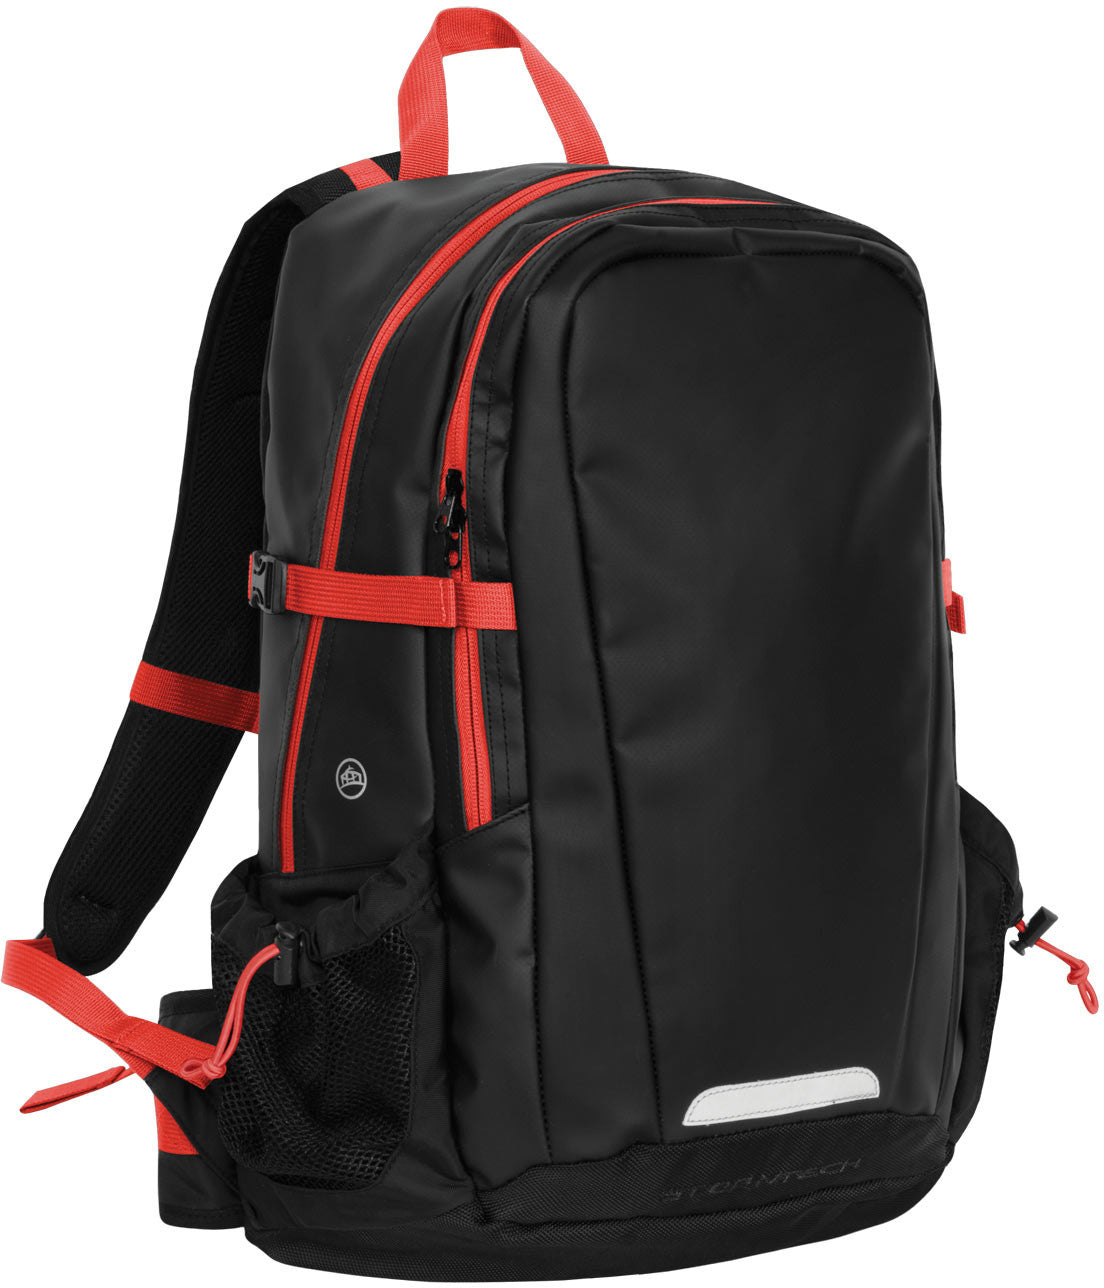 DELUGE WATERPROOF BACKPACK - Stormtech - Graphic Comfort  - 1